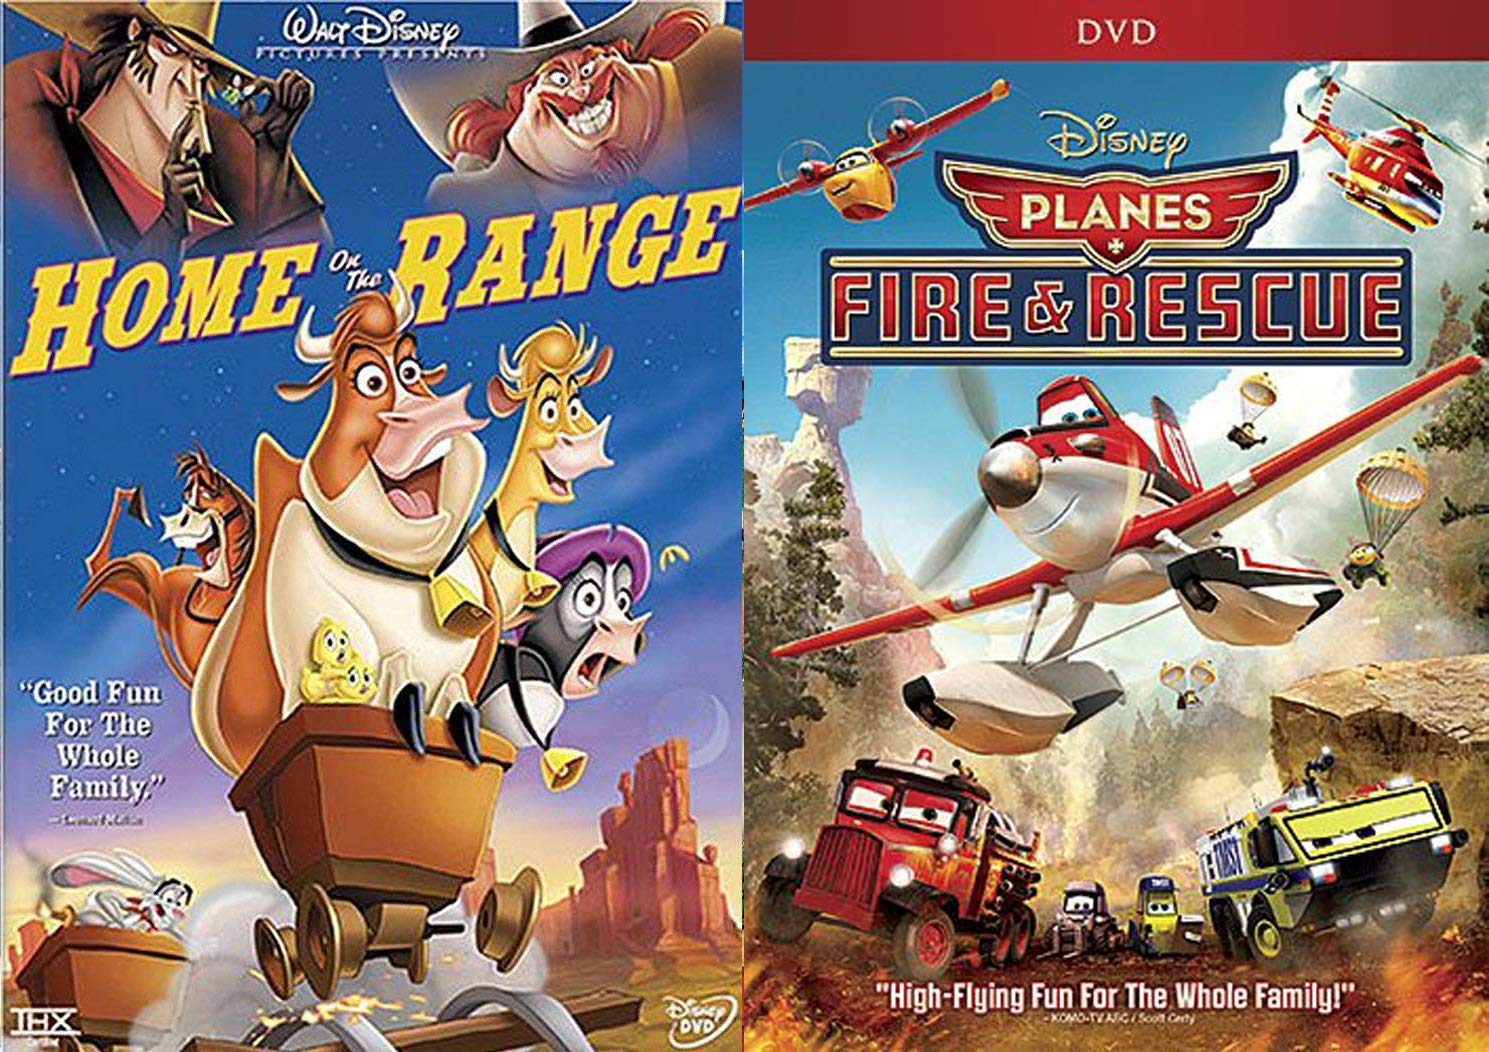 Flying Fun & Animal Antics Disney Cartoon Movie Planes Fire & Rescue + Home on The Range DVD Animated Double Feature Set Family Bundle